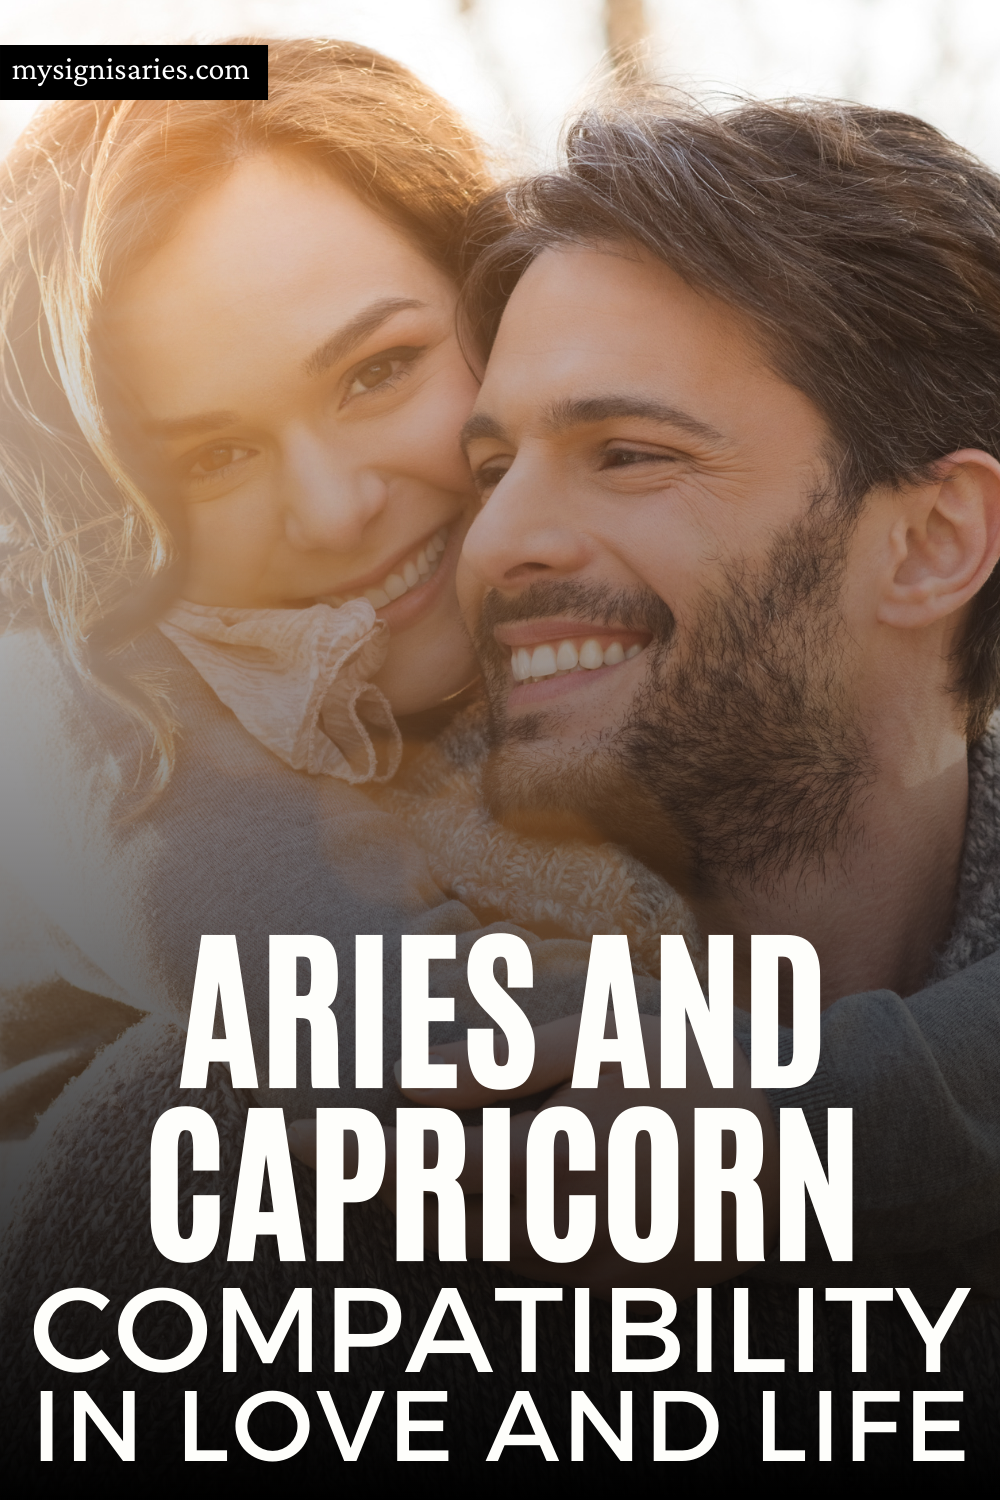 Aries And Capricorn Compatibility In Love And Life #aries #capricorn #astrology #zodiac #compatibility